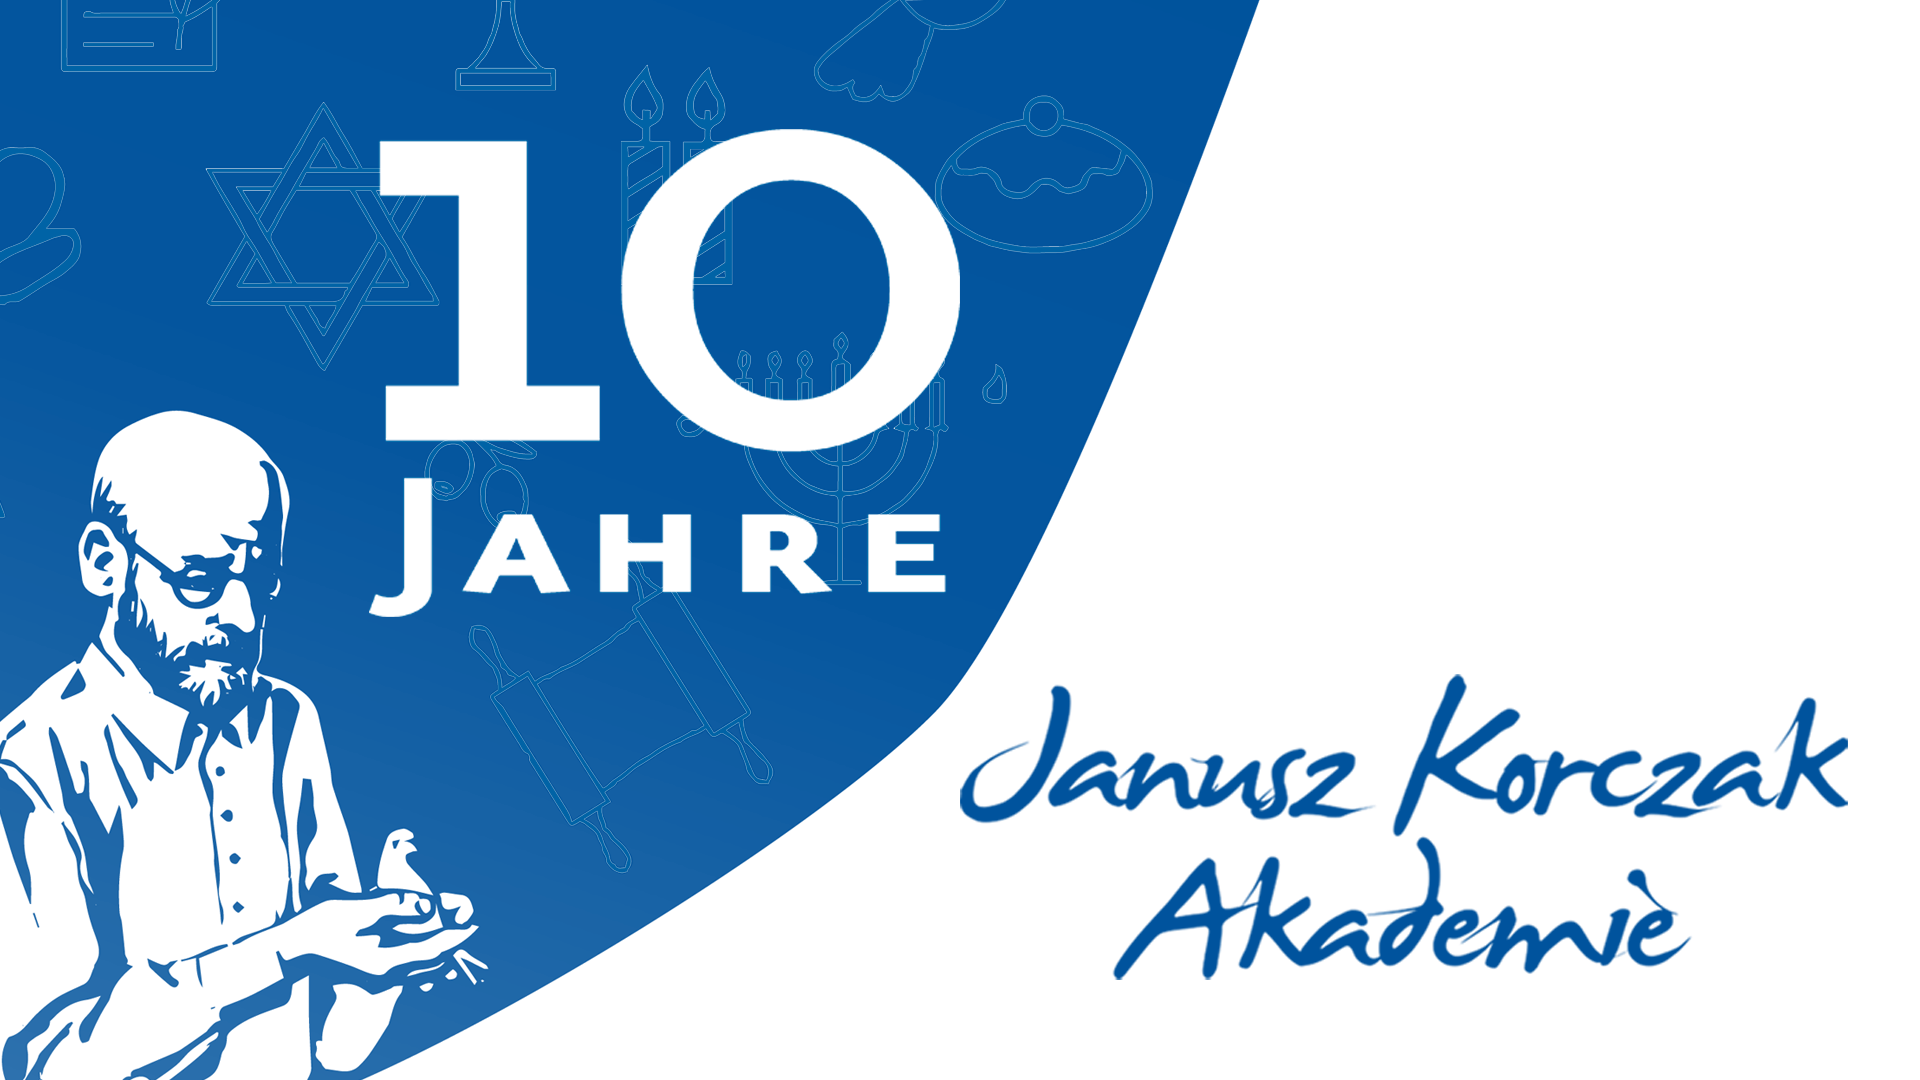 10 Jahre EJKA neues Banner.png